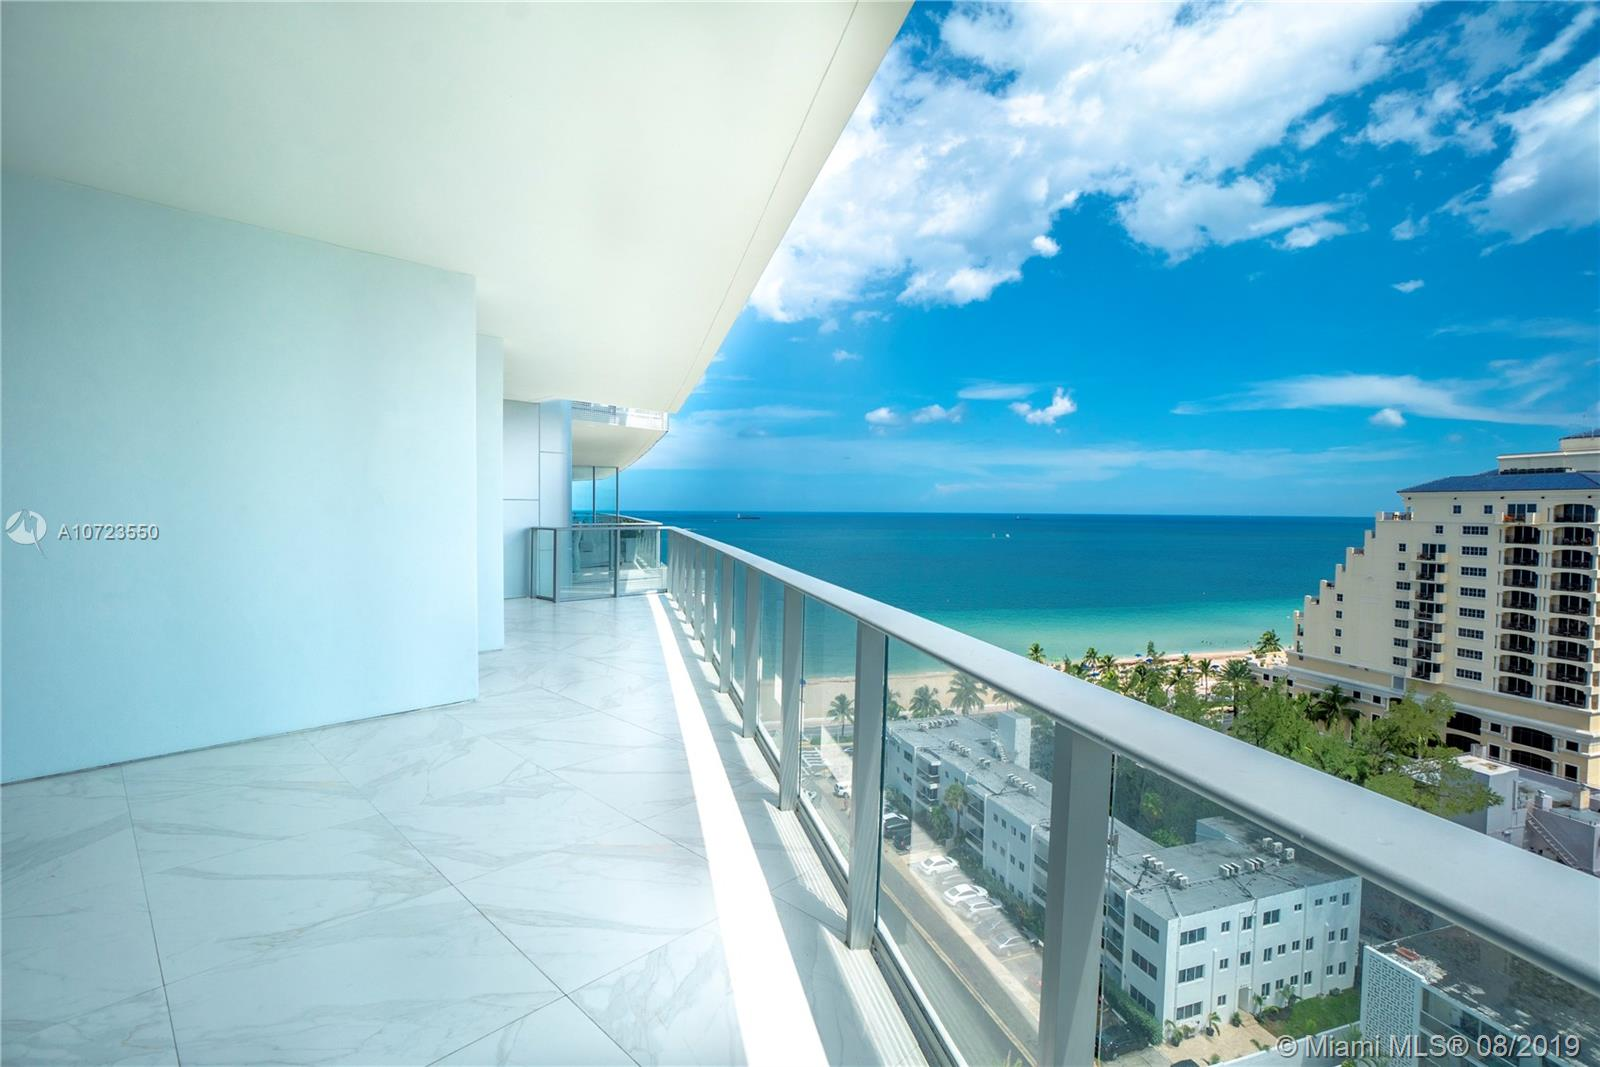 701 N Fort Lauderdale Blvd #1205 For Sale A10723550, FL